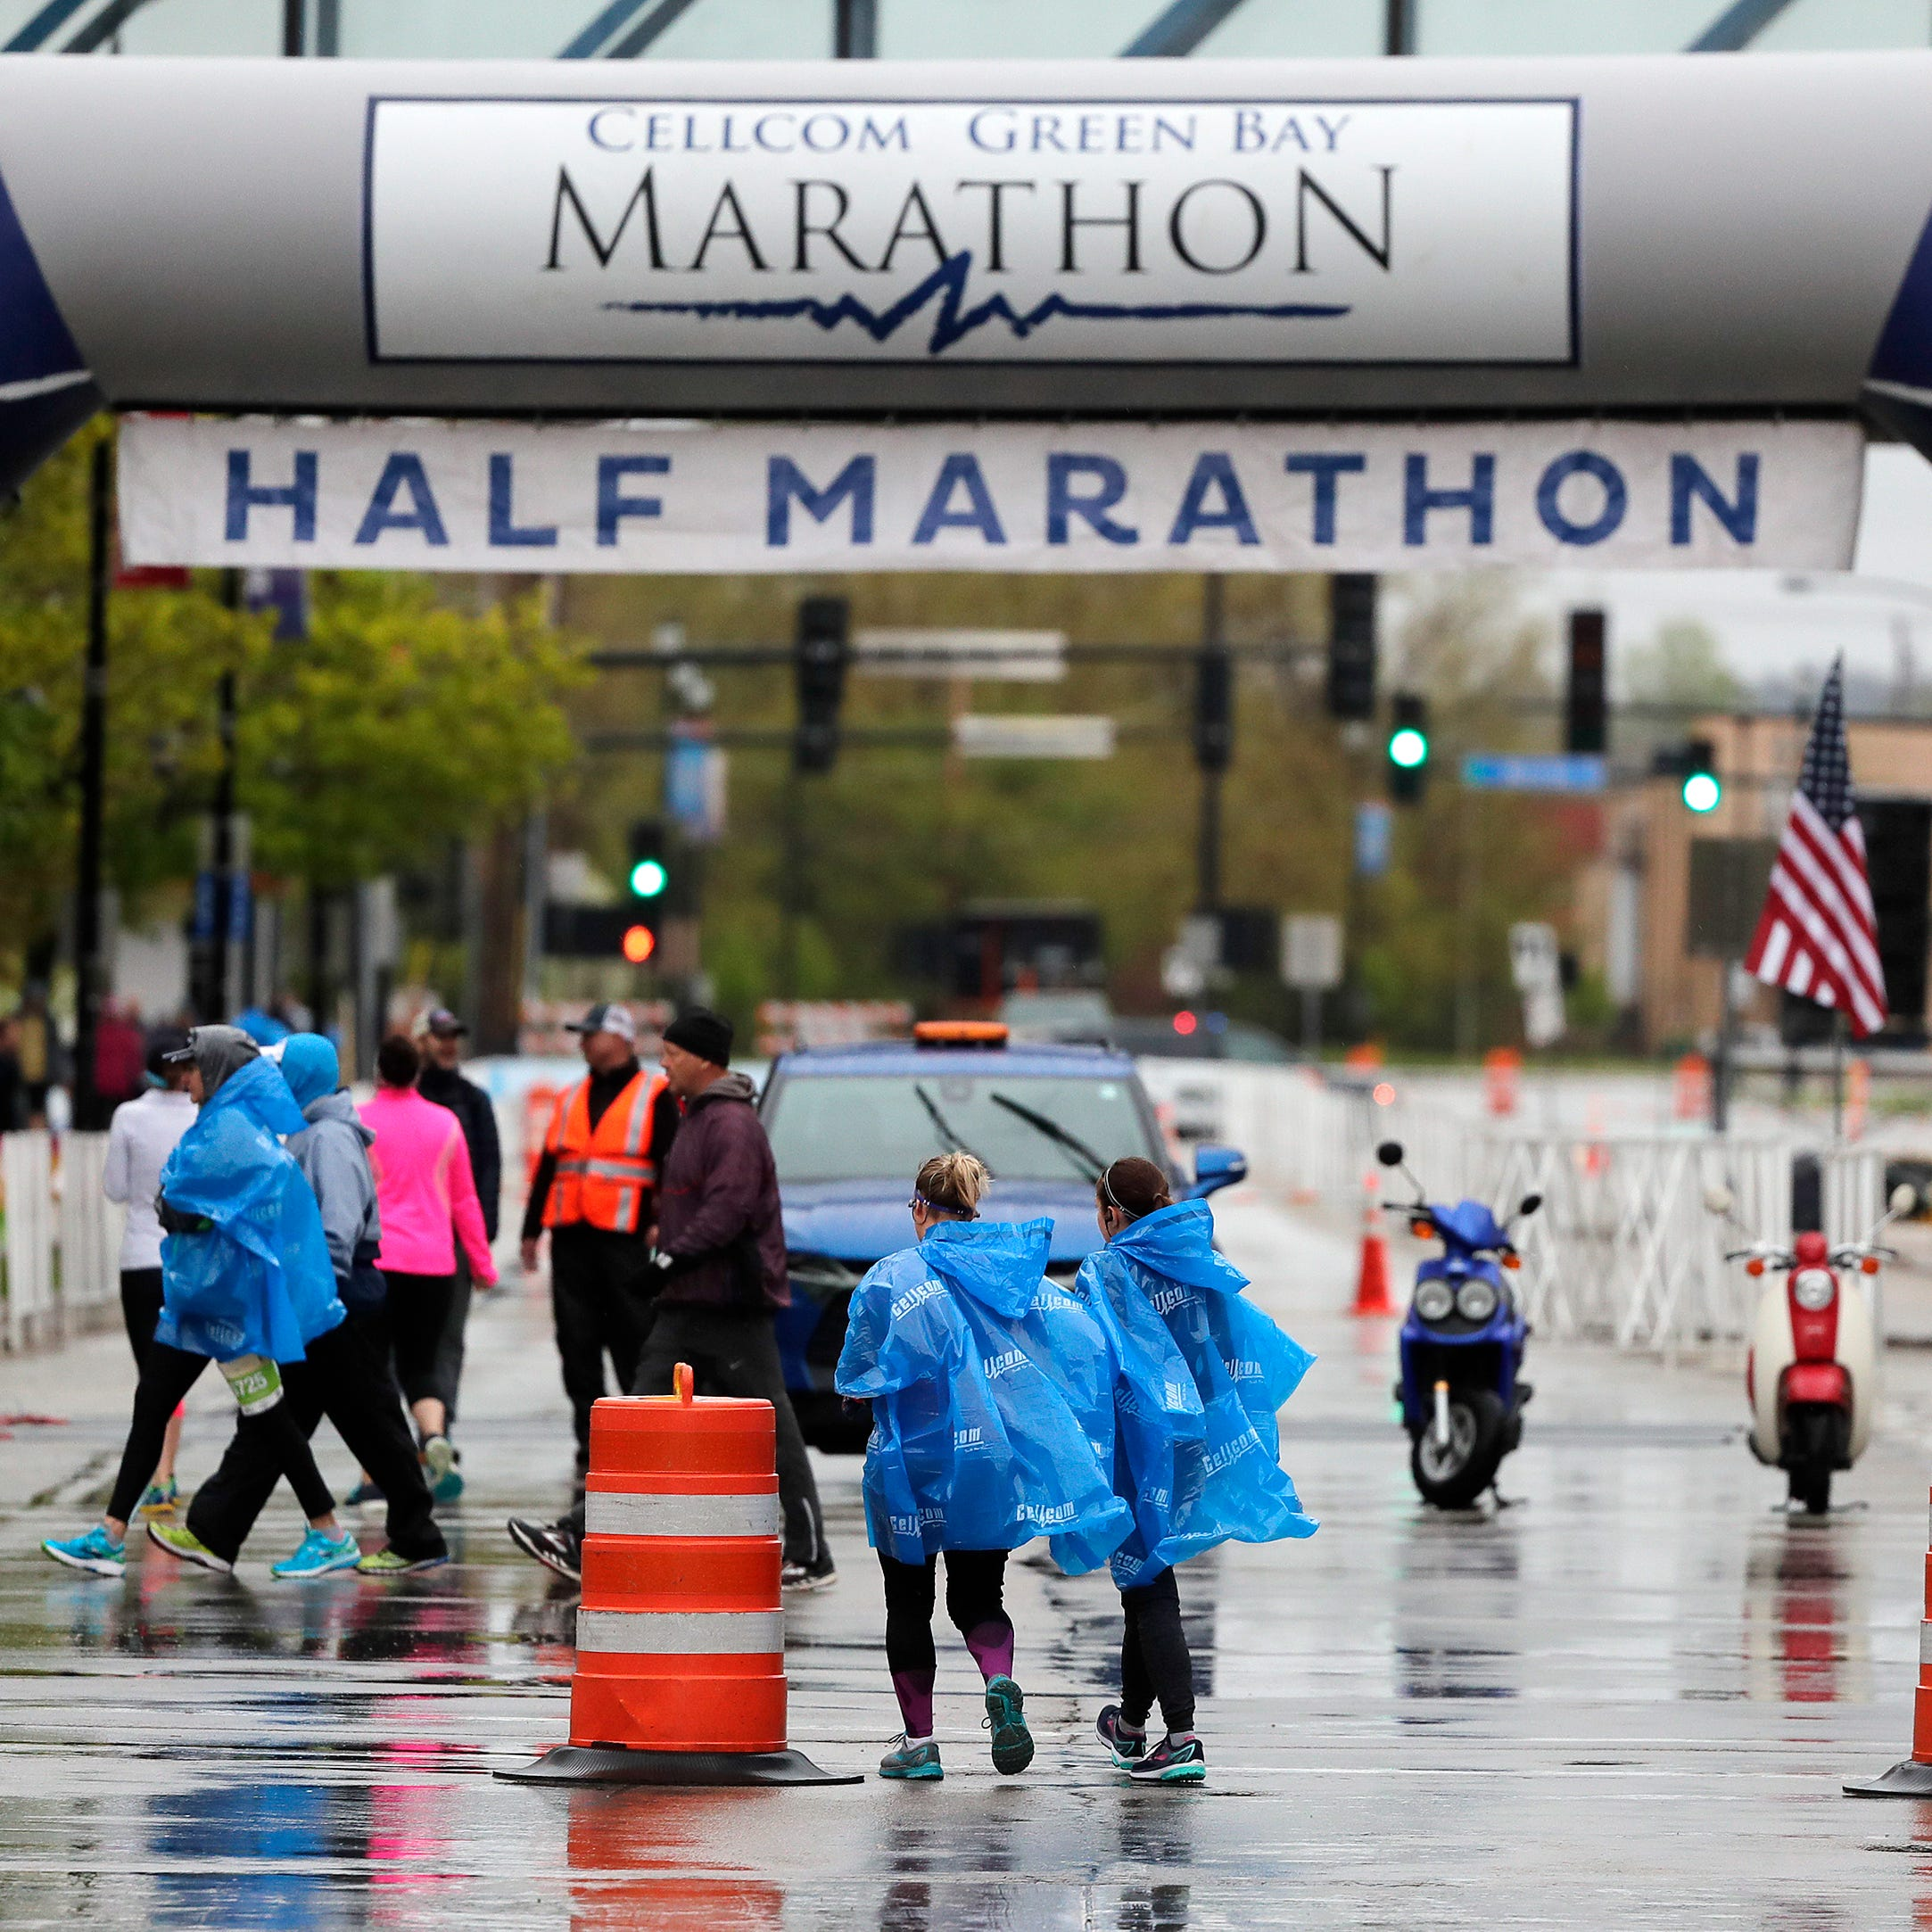 Cellcom Green Bay Marathon cancels full marathon due to flooding; half marathon still open